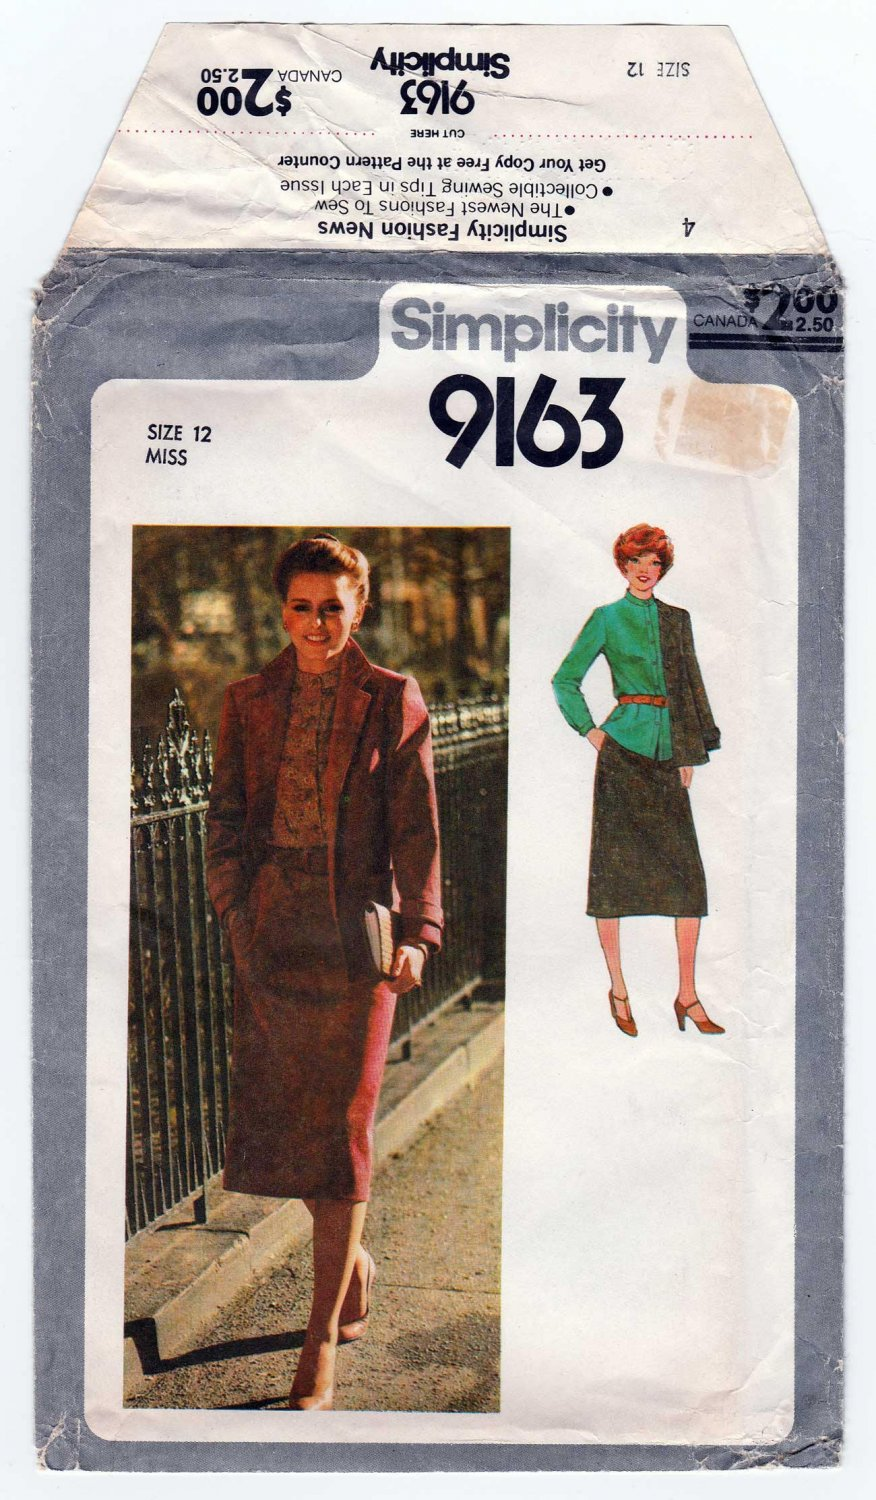 Simplicity 9163 Women's Skirt, Blouse and Lined Jacket Sewing Pattern Misse's Size 12 Uncut